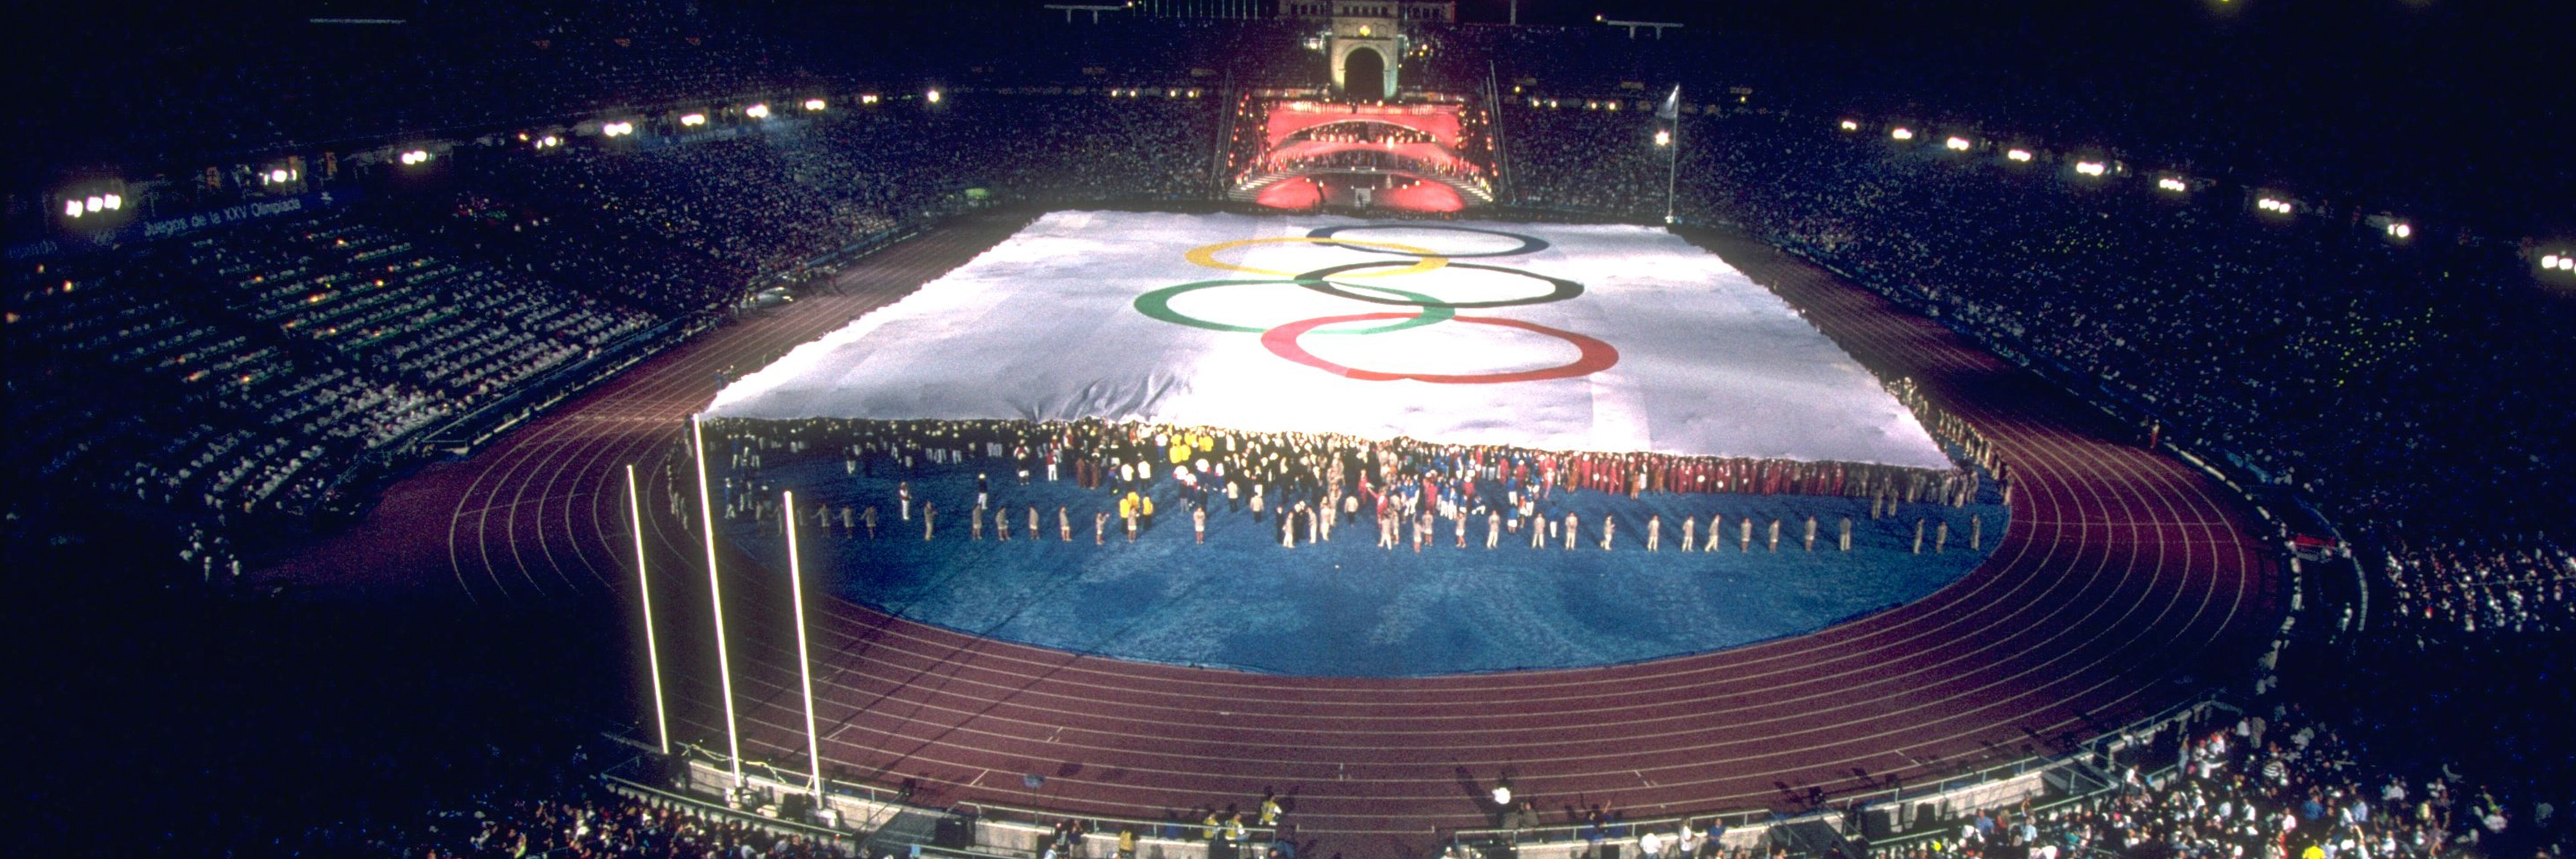 https://stillmed.olympic.org/media/Images/OlympicOrg/Games/Summer/Barcelona_1992/Barcelona_1992_banner.jpg?interpolation=lanczos-none&resize=1920:640